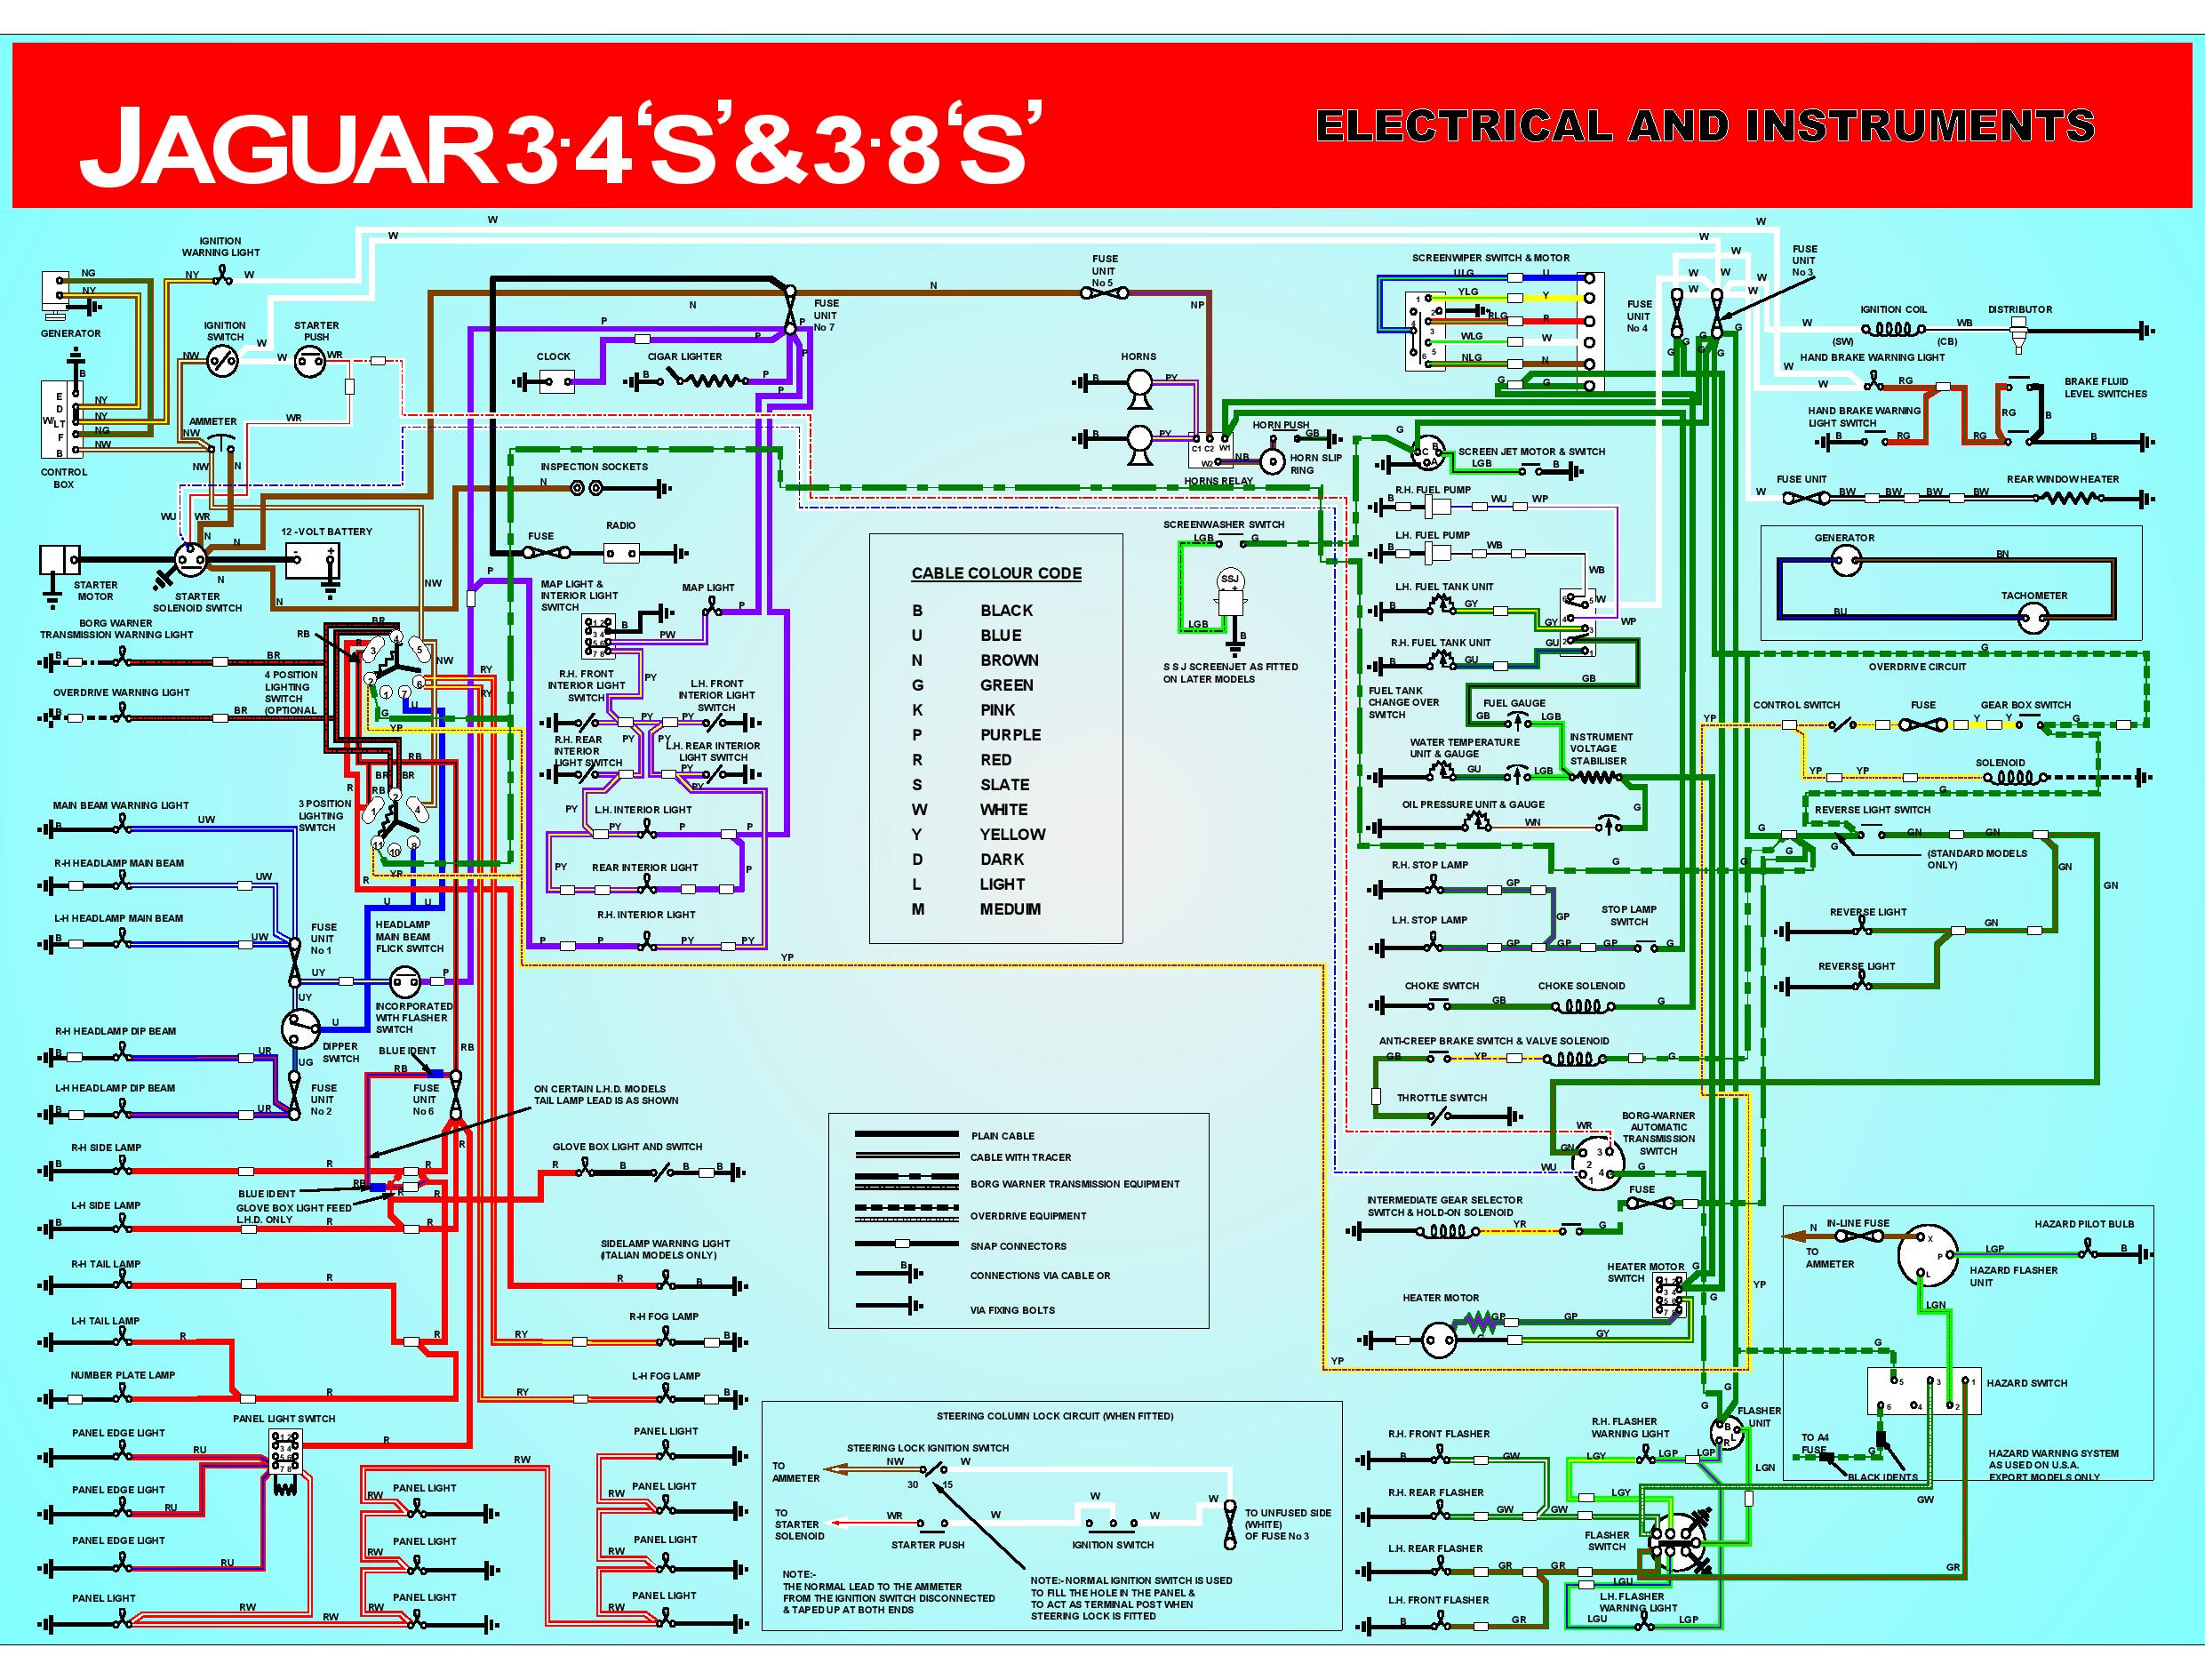 S type wiring page diagrams 633455 jaguar s type wiring diagram stype electrical types of wiring harness at gsmx.co